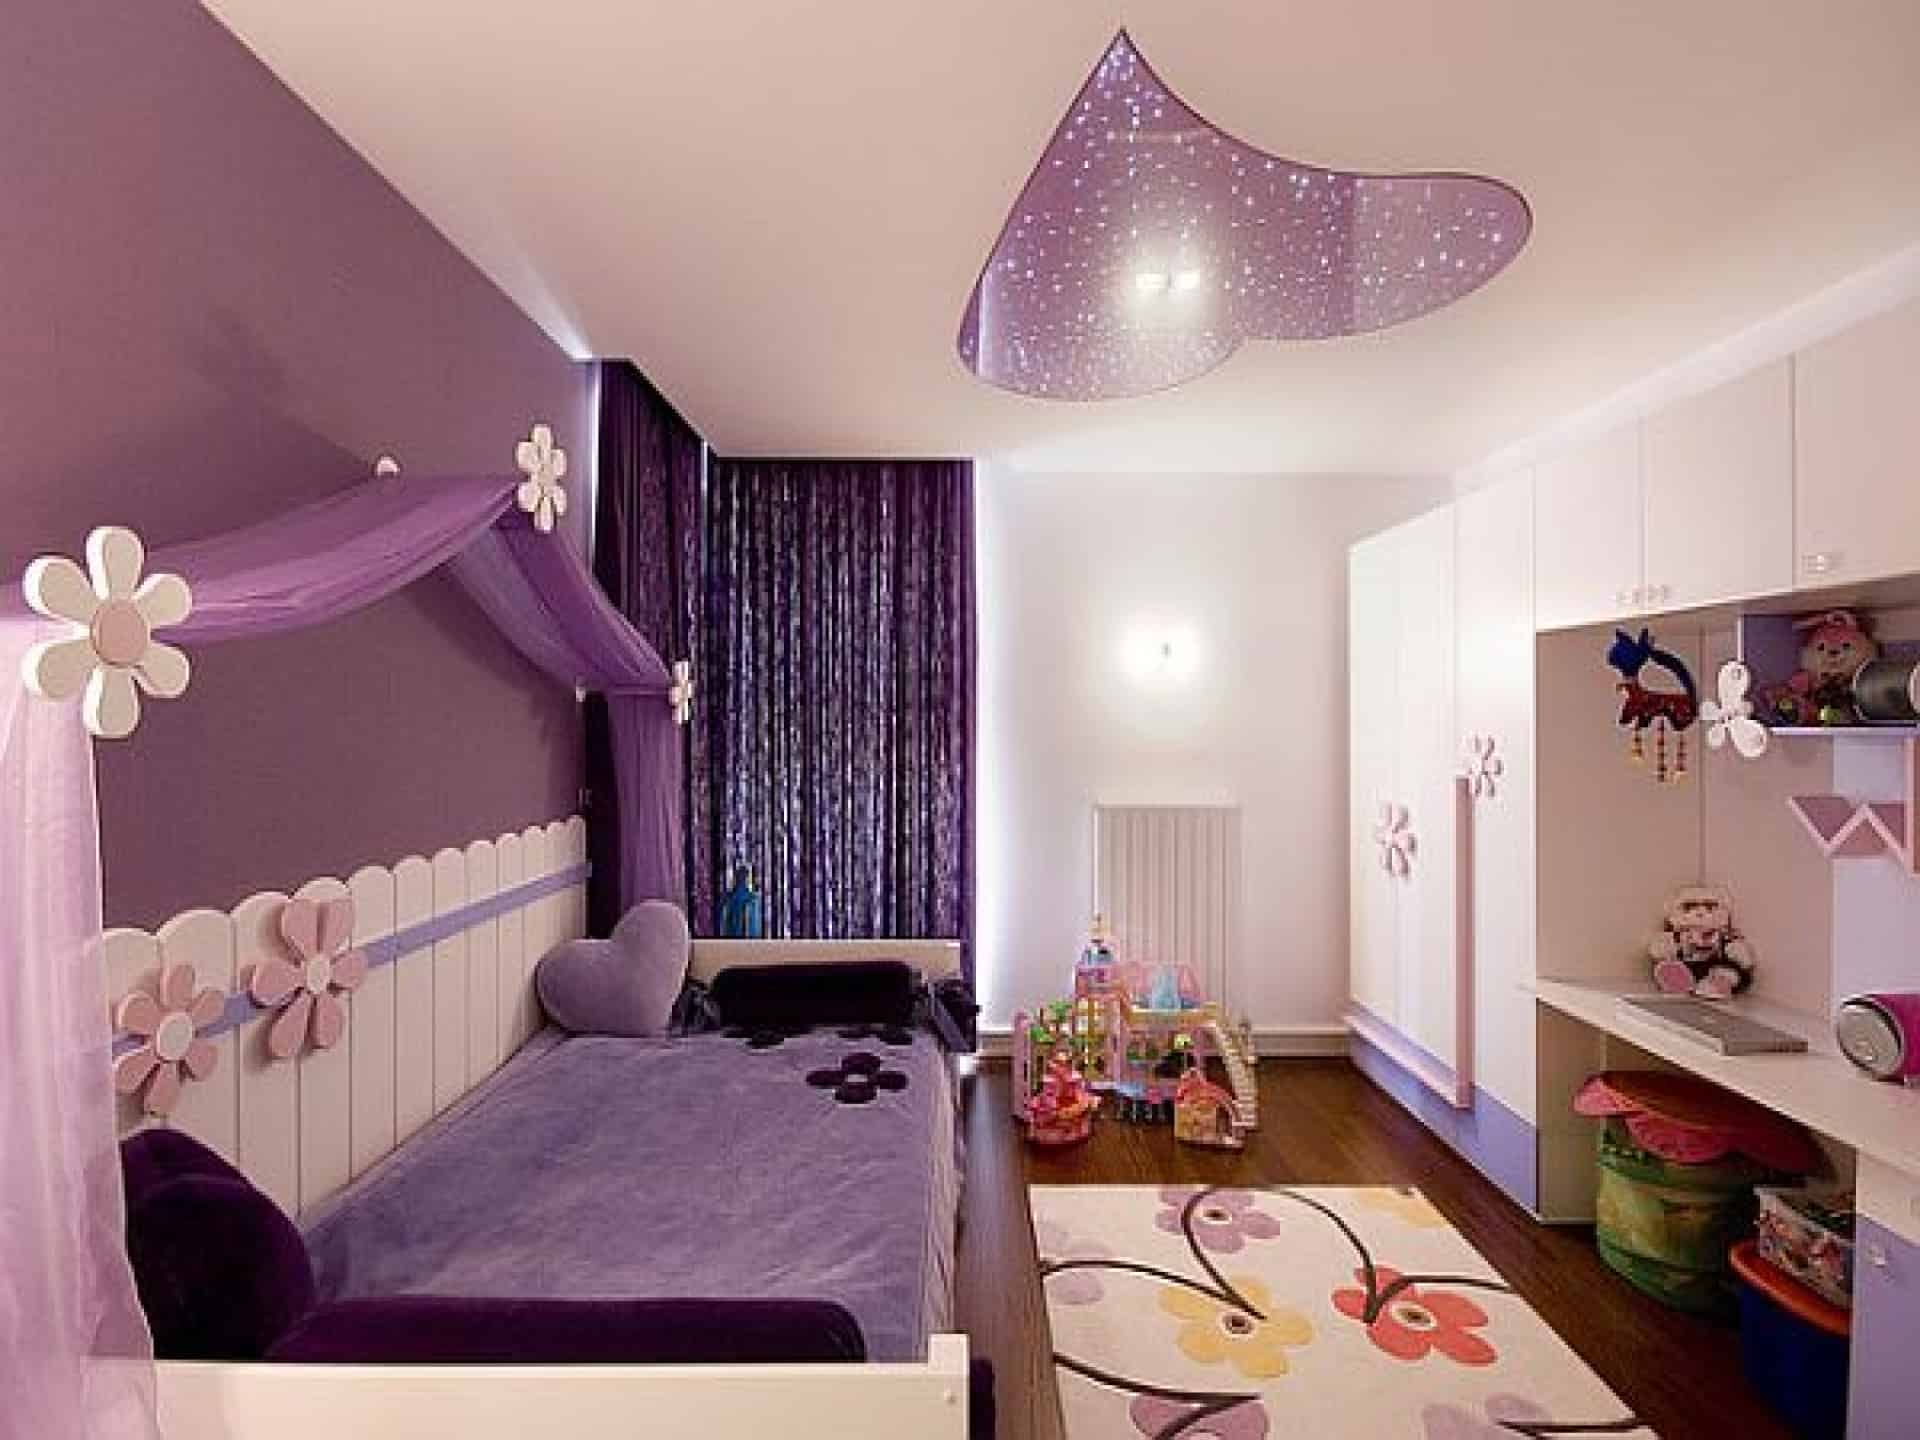 Home decor trends 2017 purple teen room for Room decor ideas for teenage girl